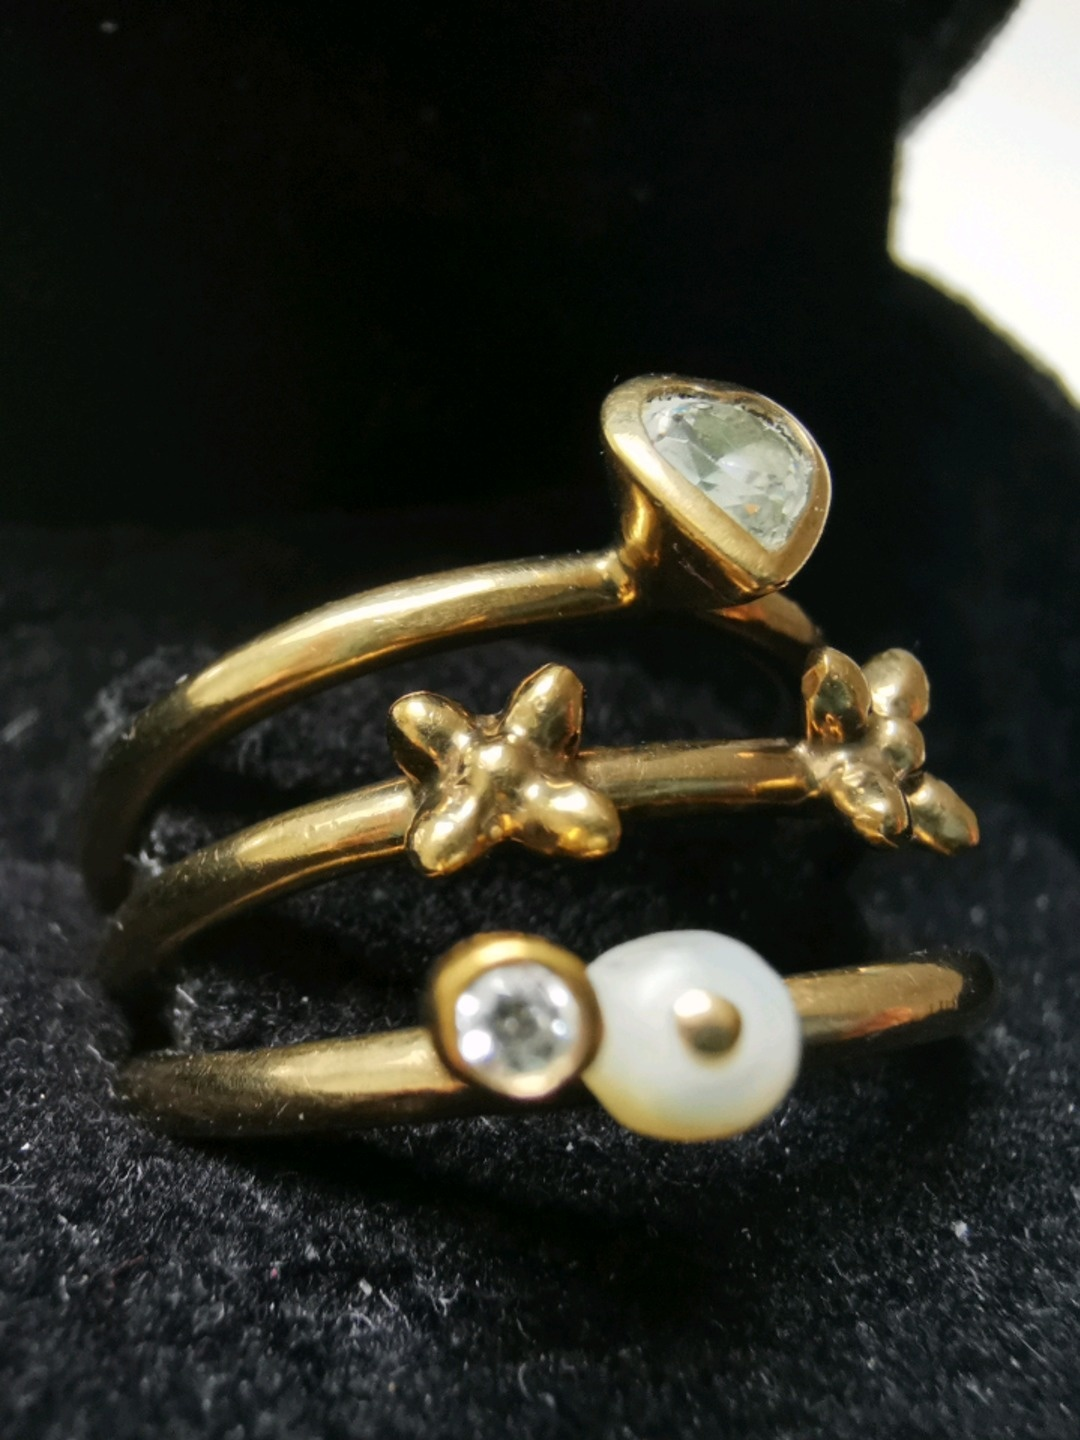 Women's jewellery & bracelets - SPINNING GULD RING 8 KARAT photo 2